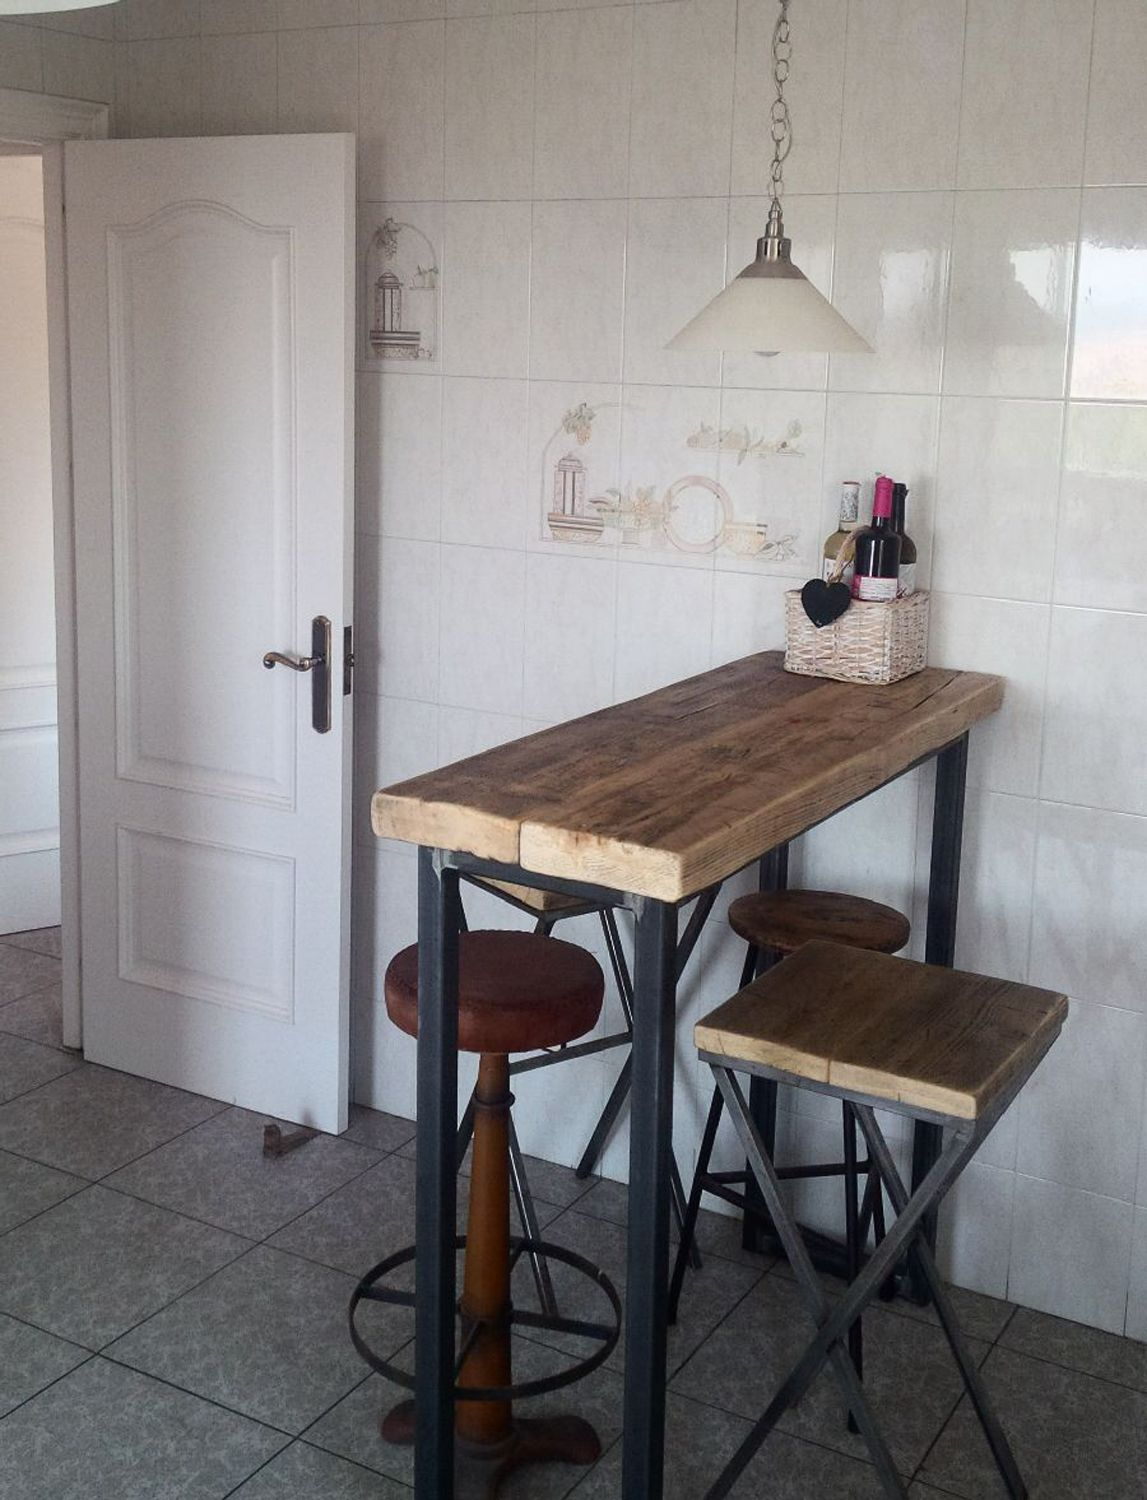 Industrial Mill Style Reclaimed Wood Breakfast Bar + Two Stools    Www.reclaimedbespoke.co.uk